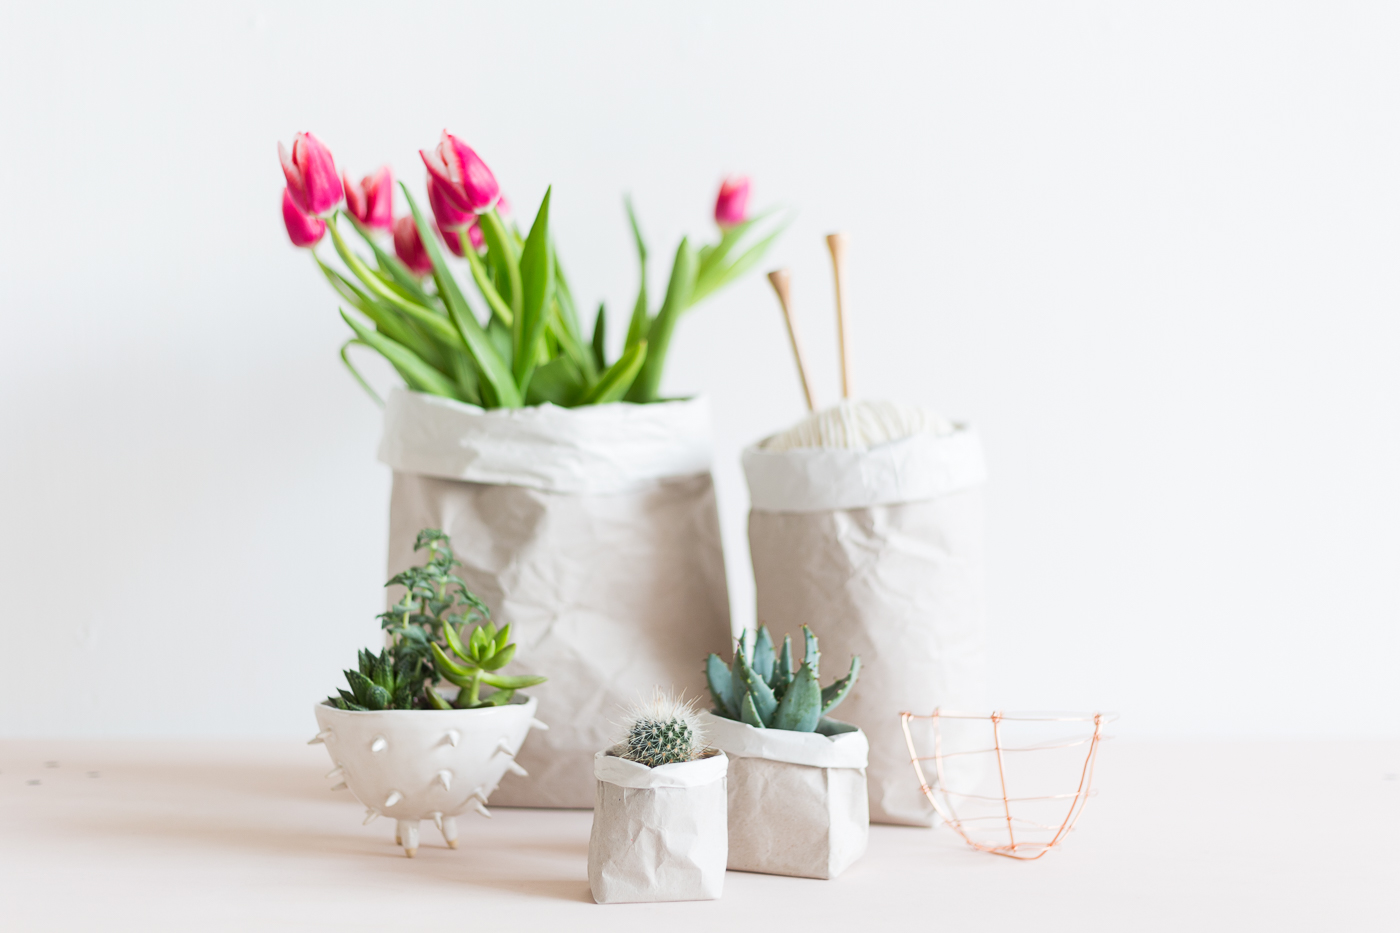 Packing-Paper-Sack-Planters-@fallfordiy-21